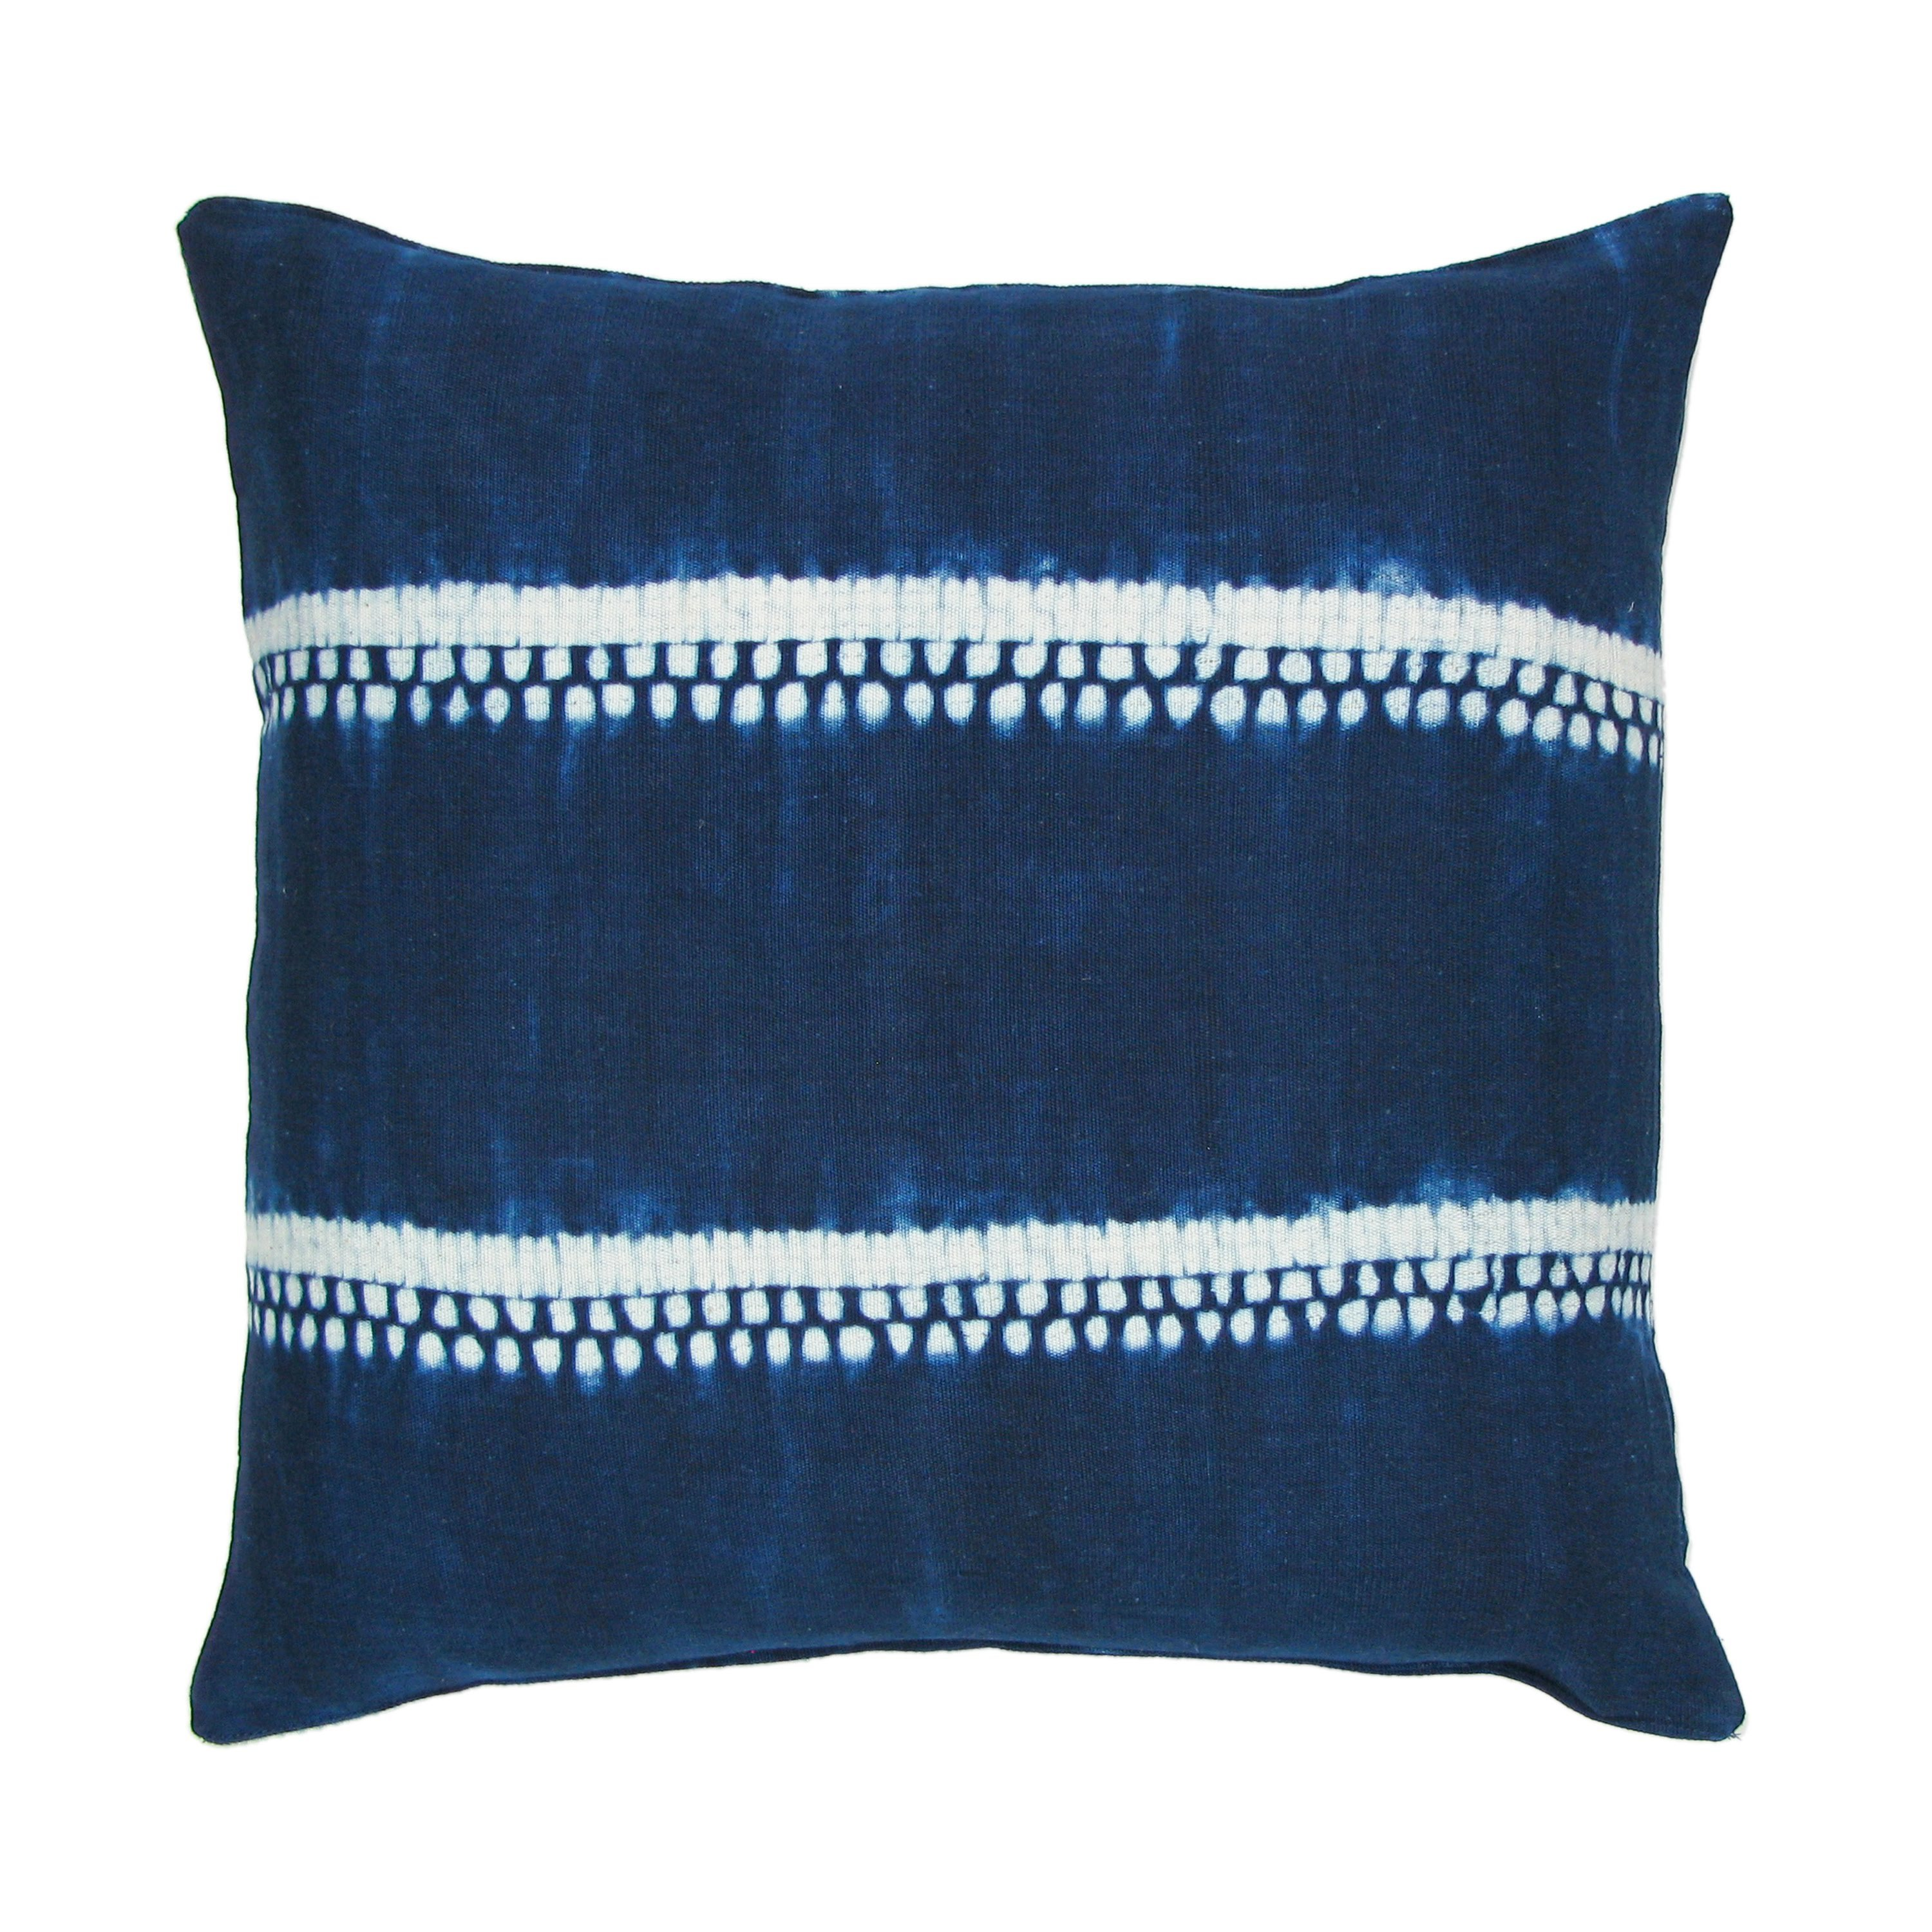 Handwoven Indigo Dot and Stripe Pillow with Insert